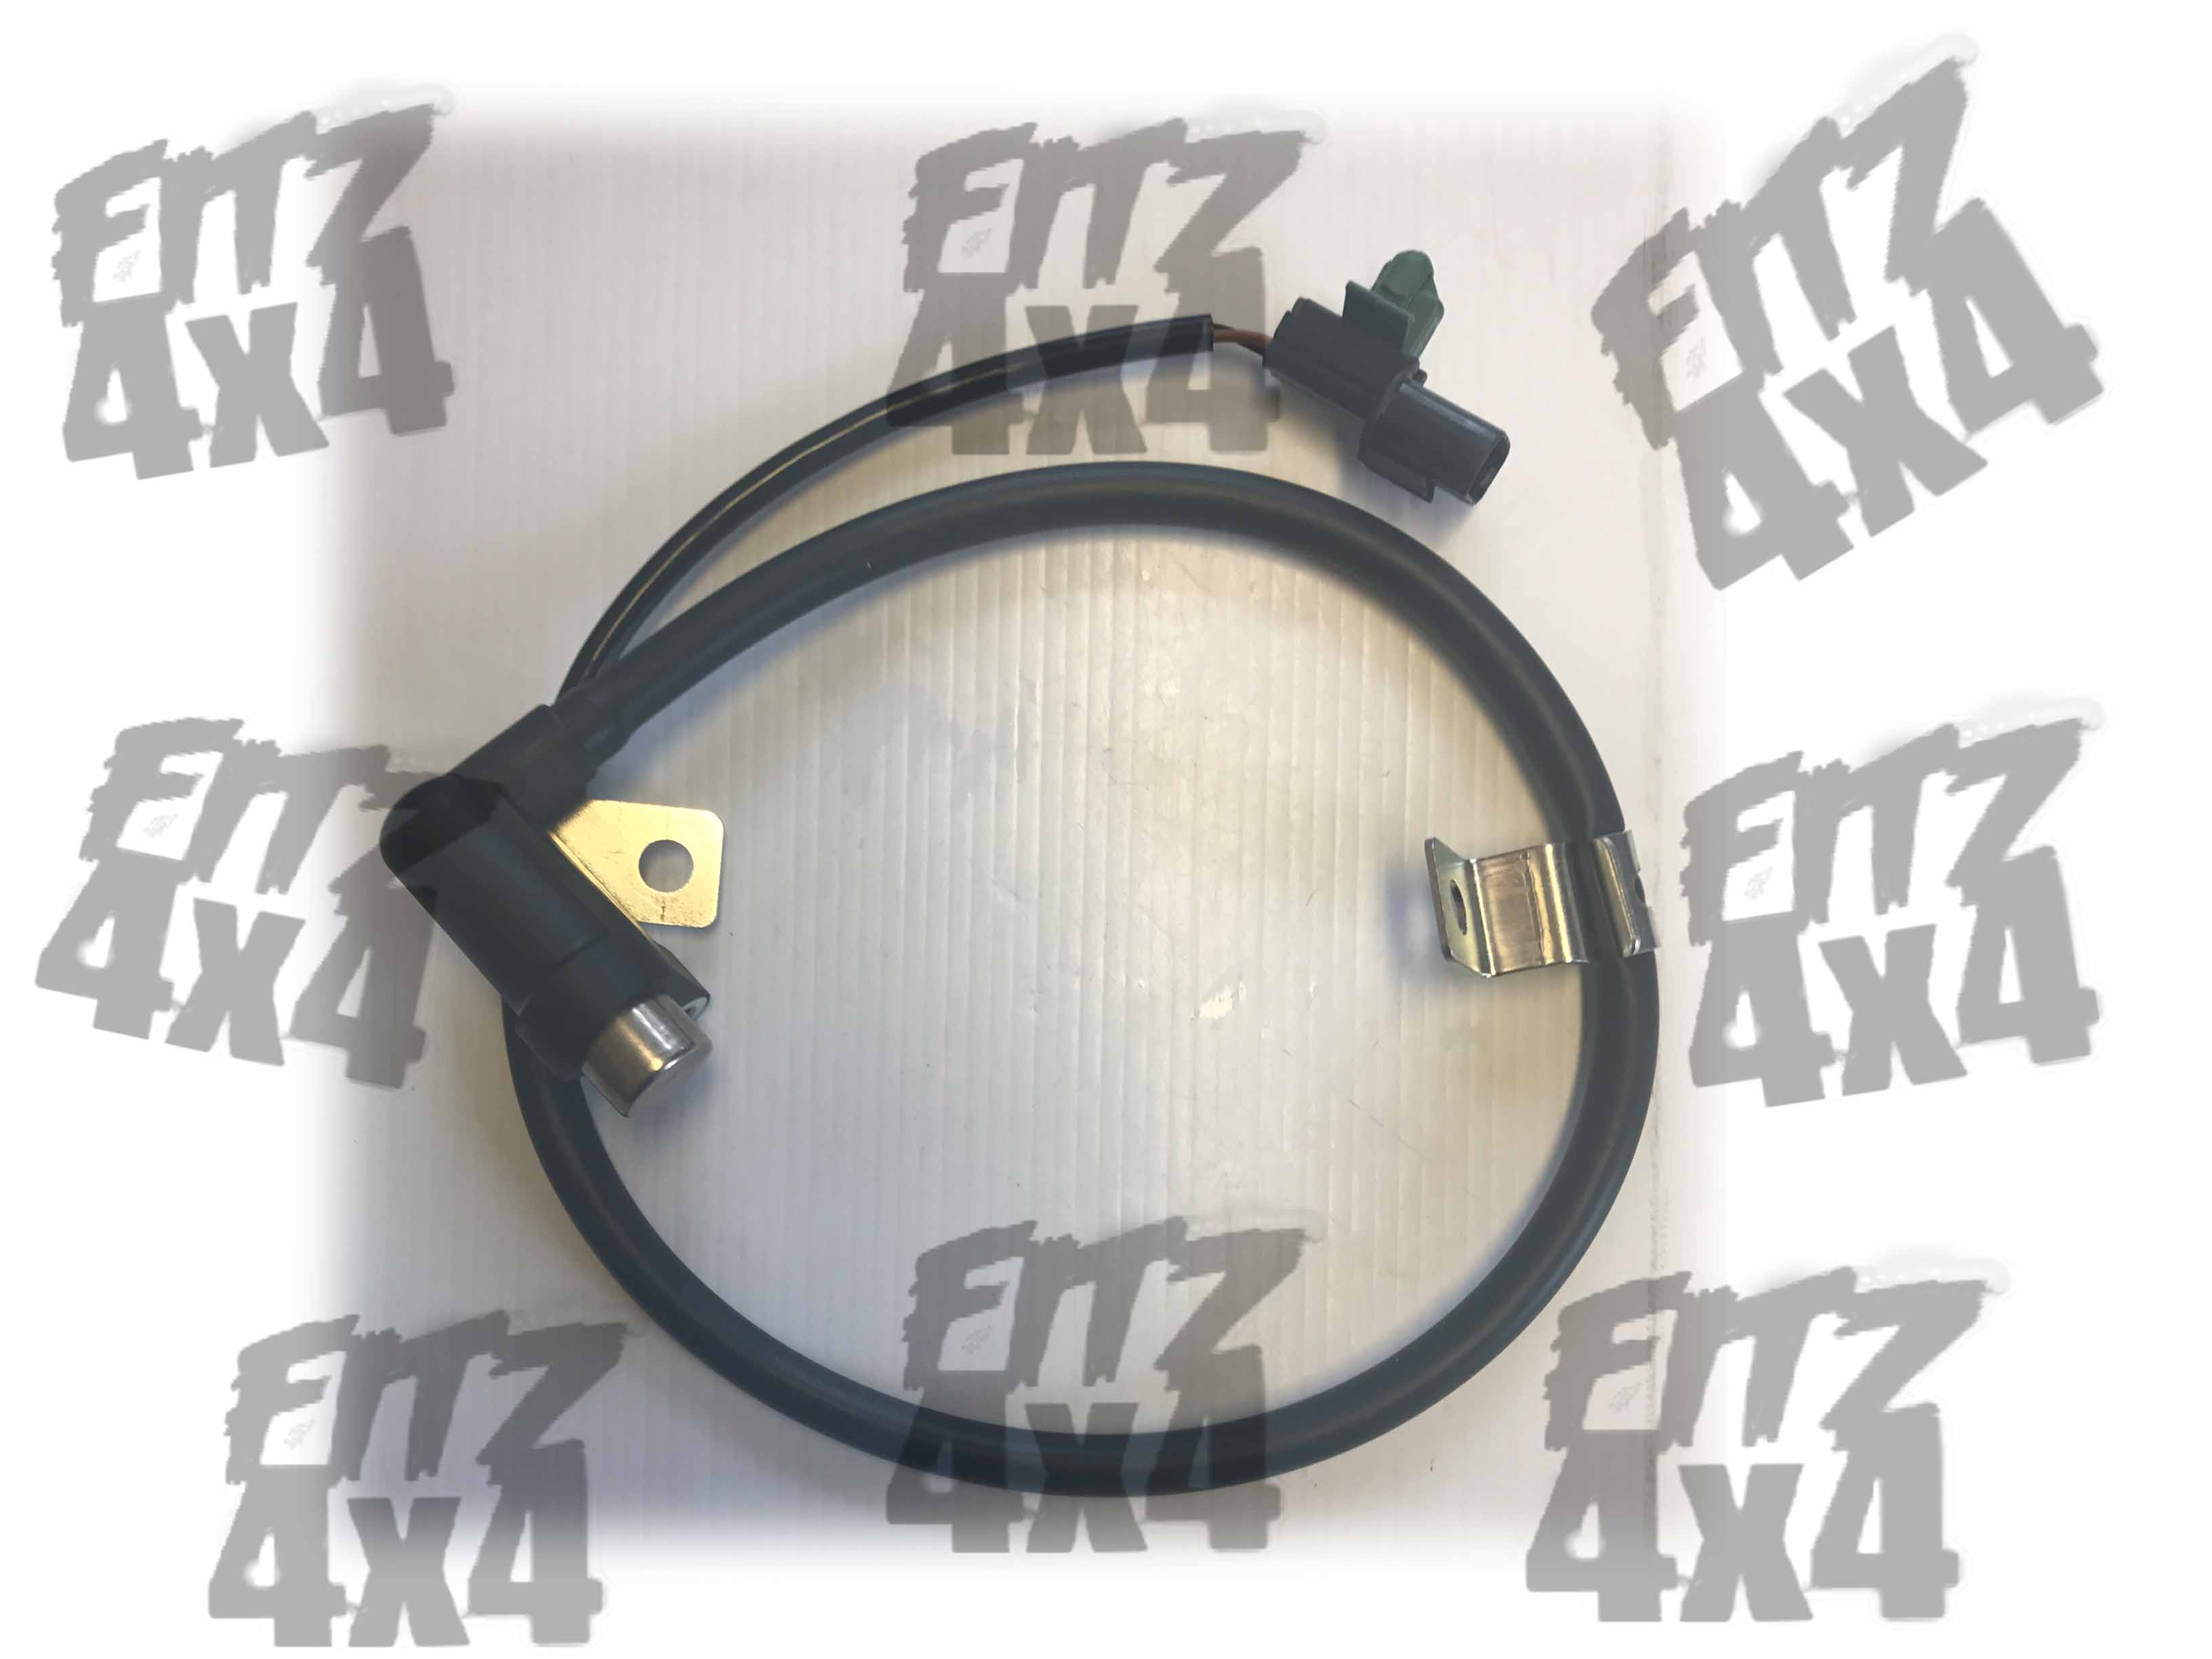 Mitsubishi L200 Rear Right ABS Sensor